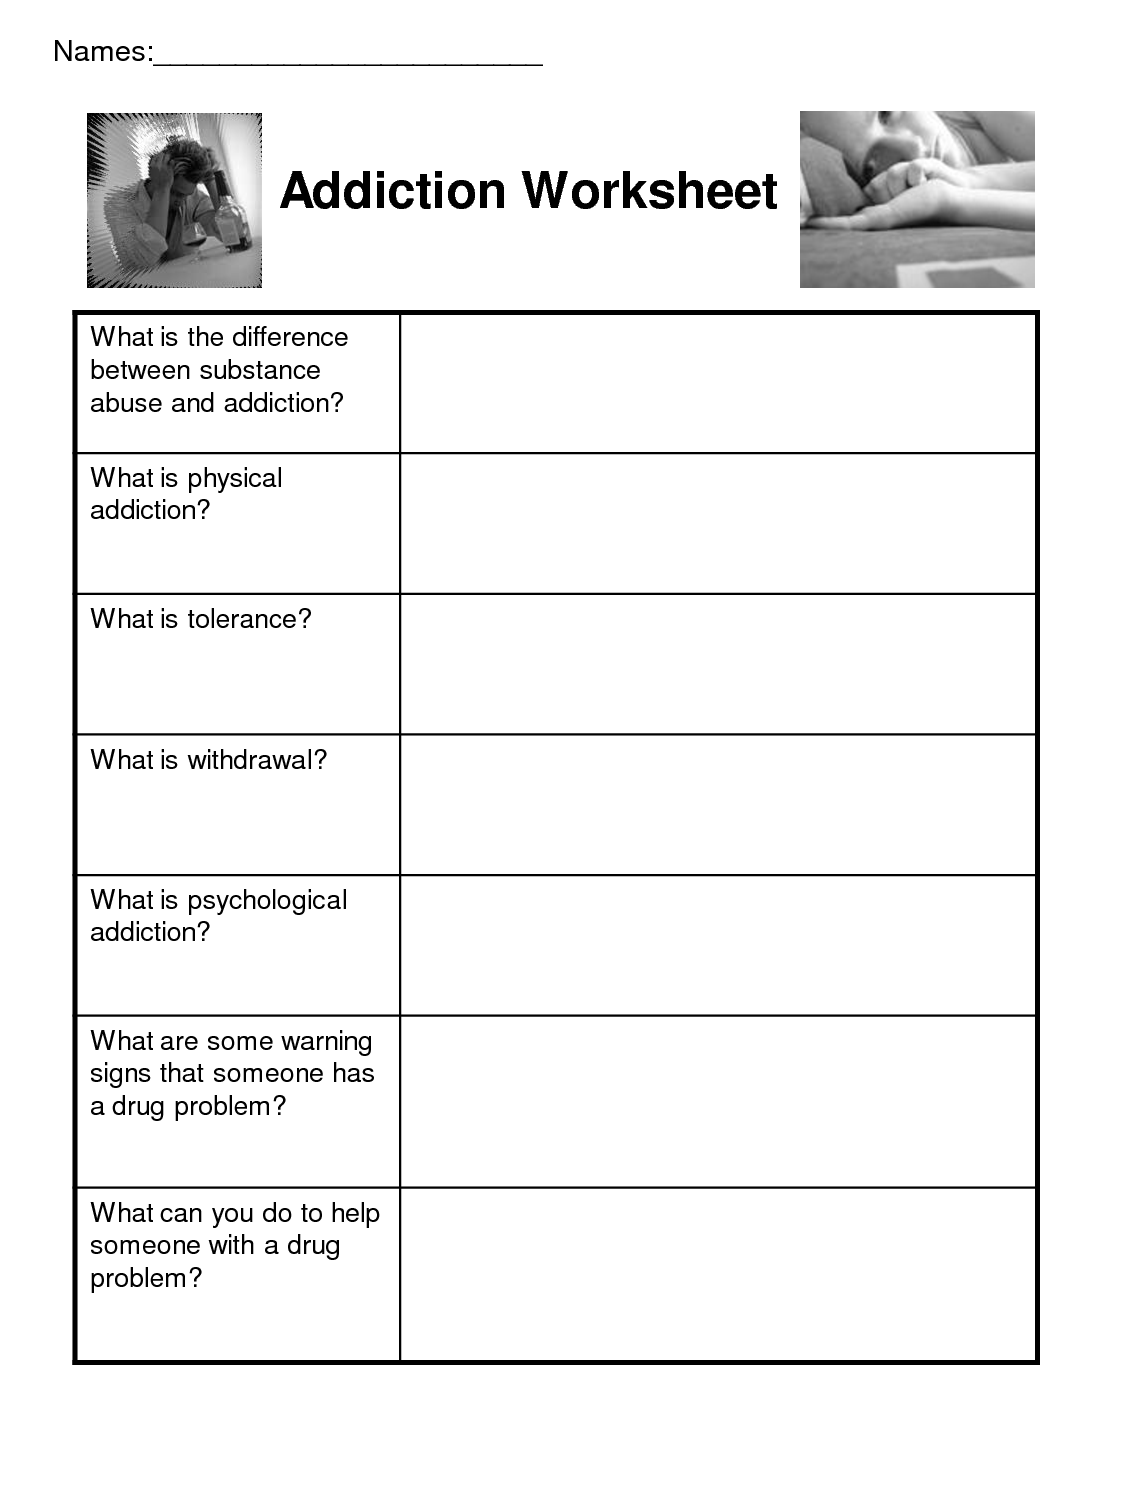 19 Best Images of Free Substance Abuse Worksheets For ...